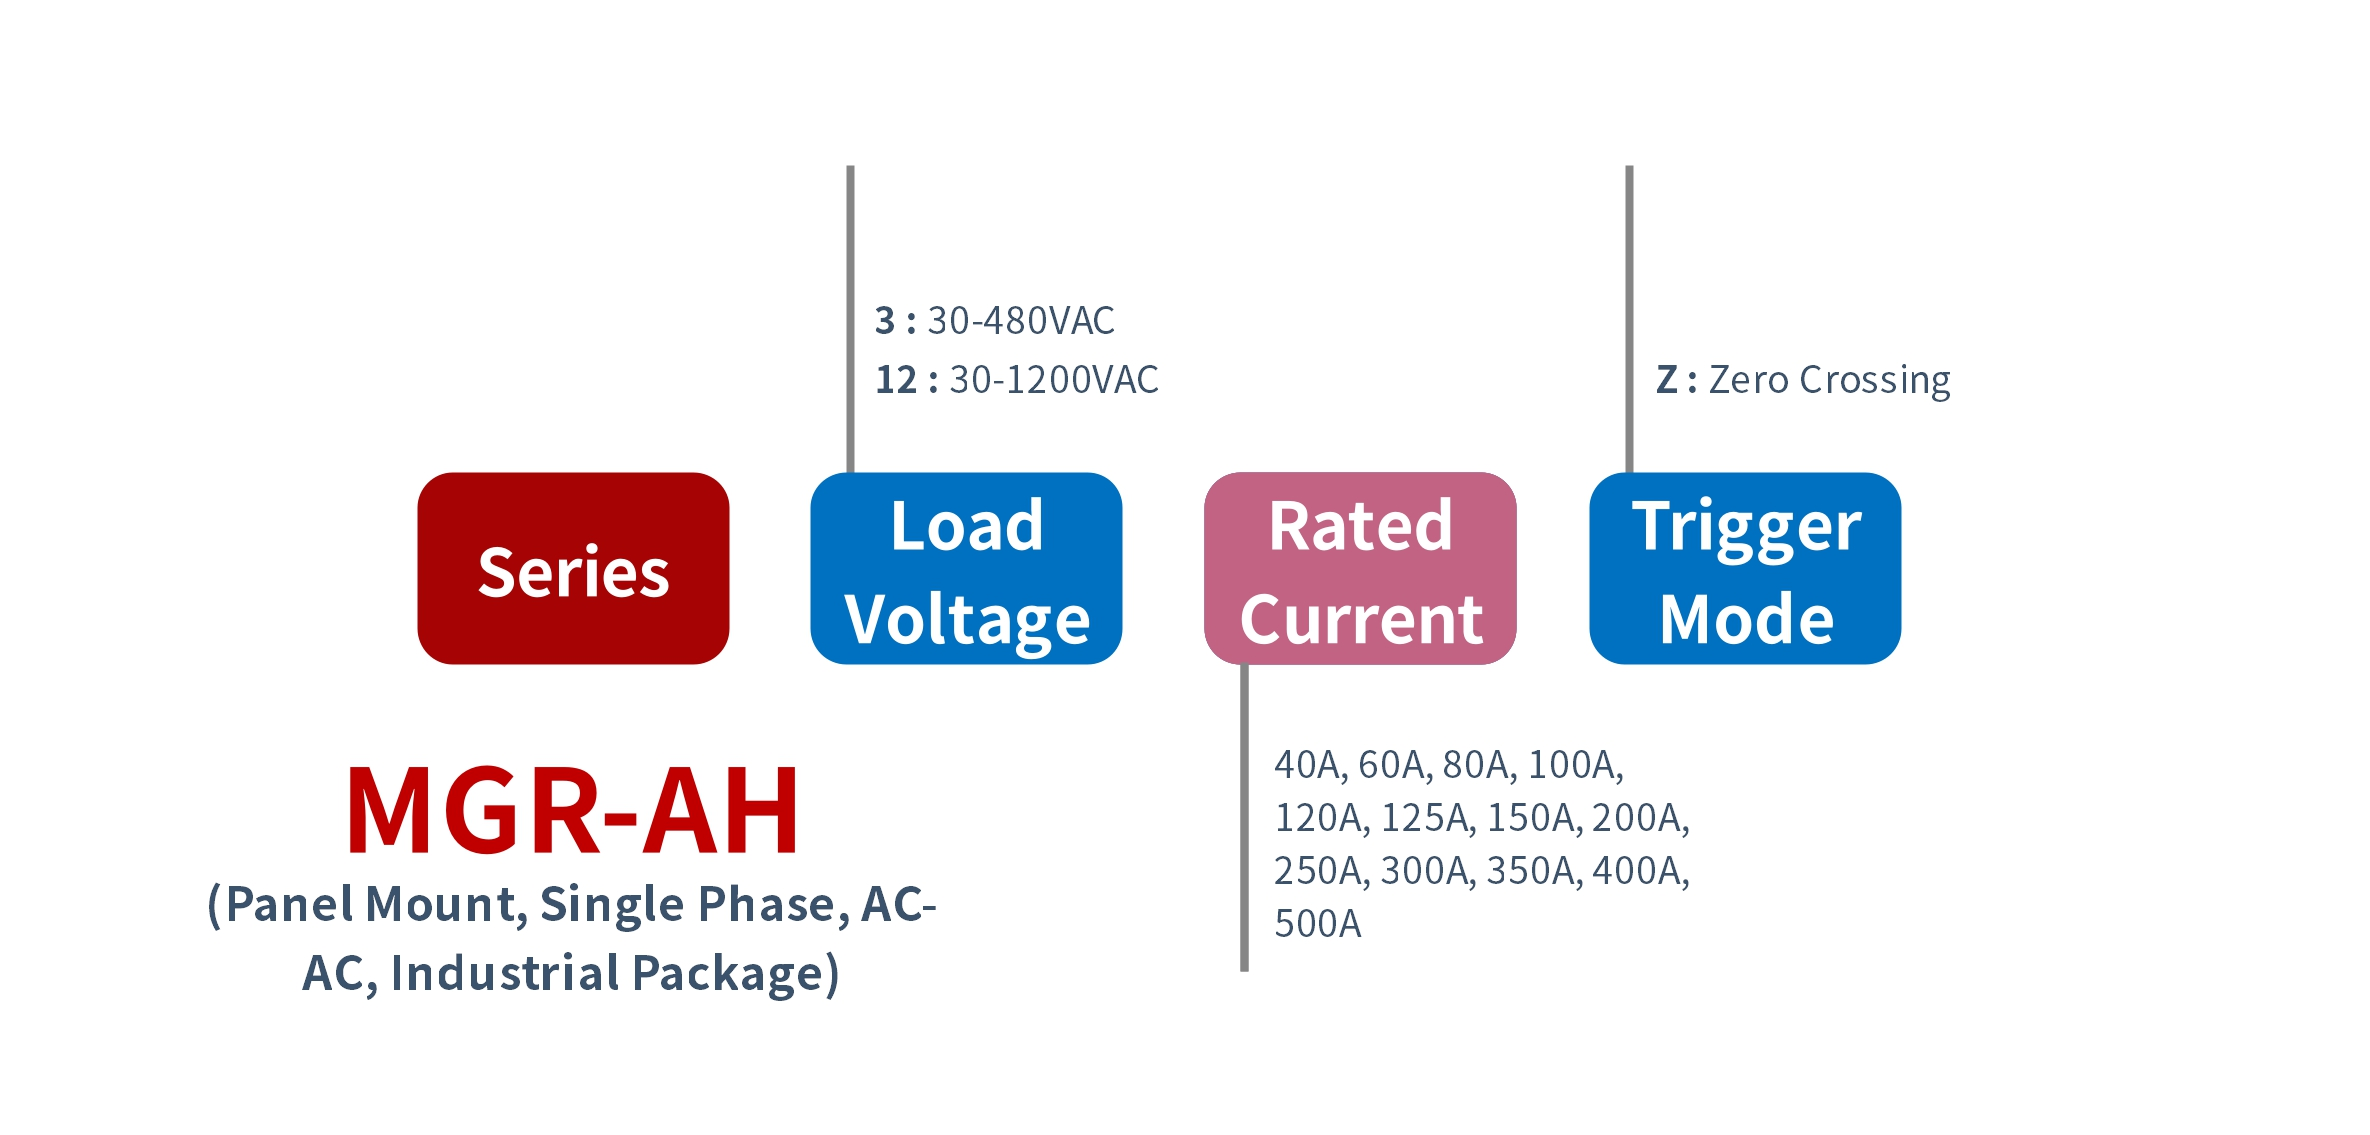 How to order MGR-AH Series Panel Mount Solid State Relay